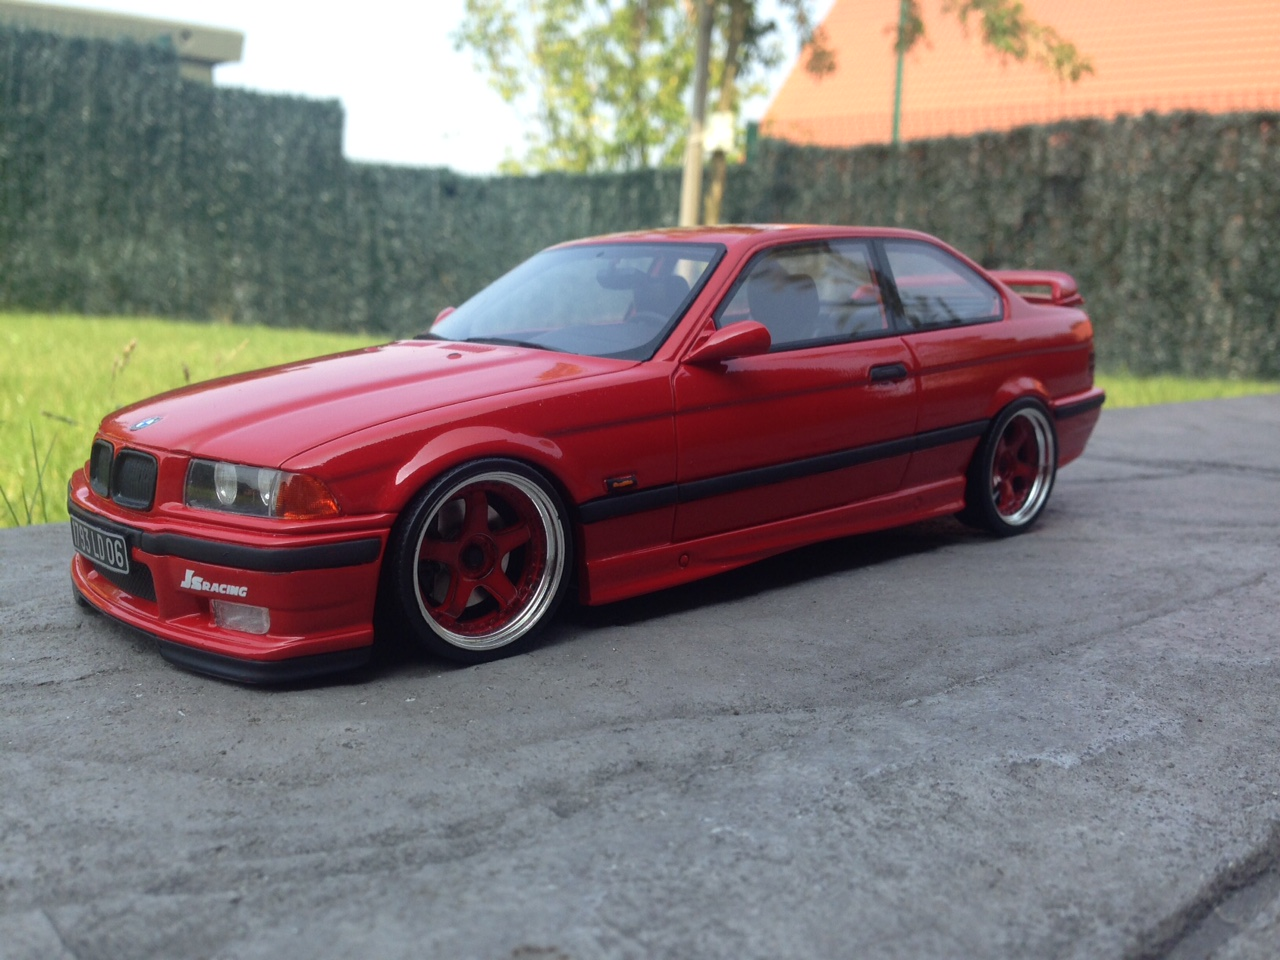 Bmw M3 E36 1/18 Ottomobile Light Weight red